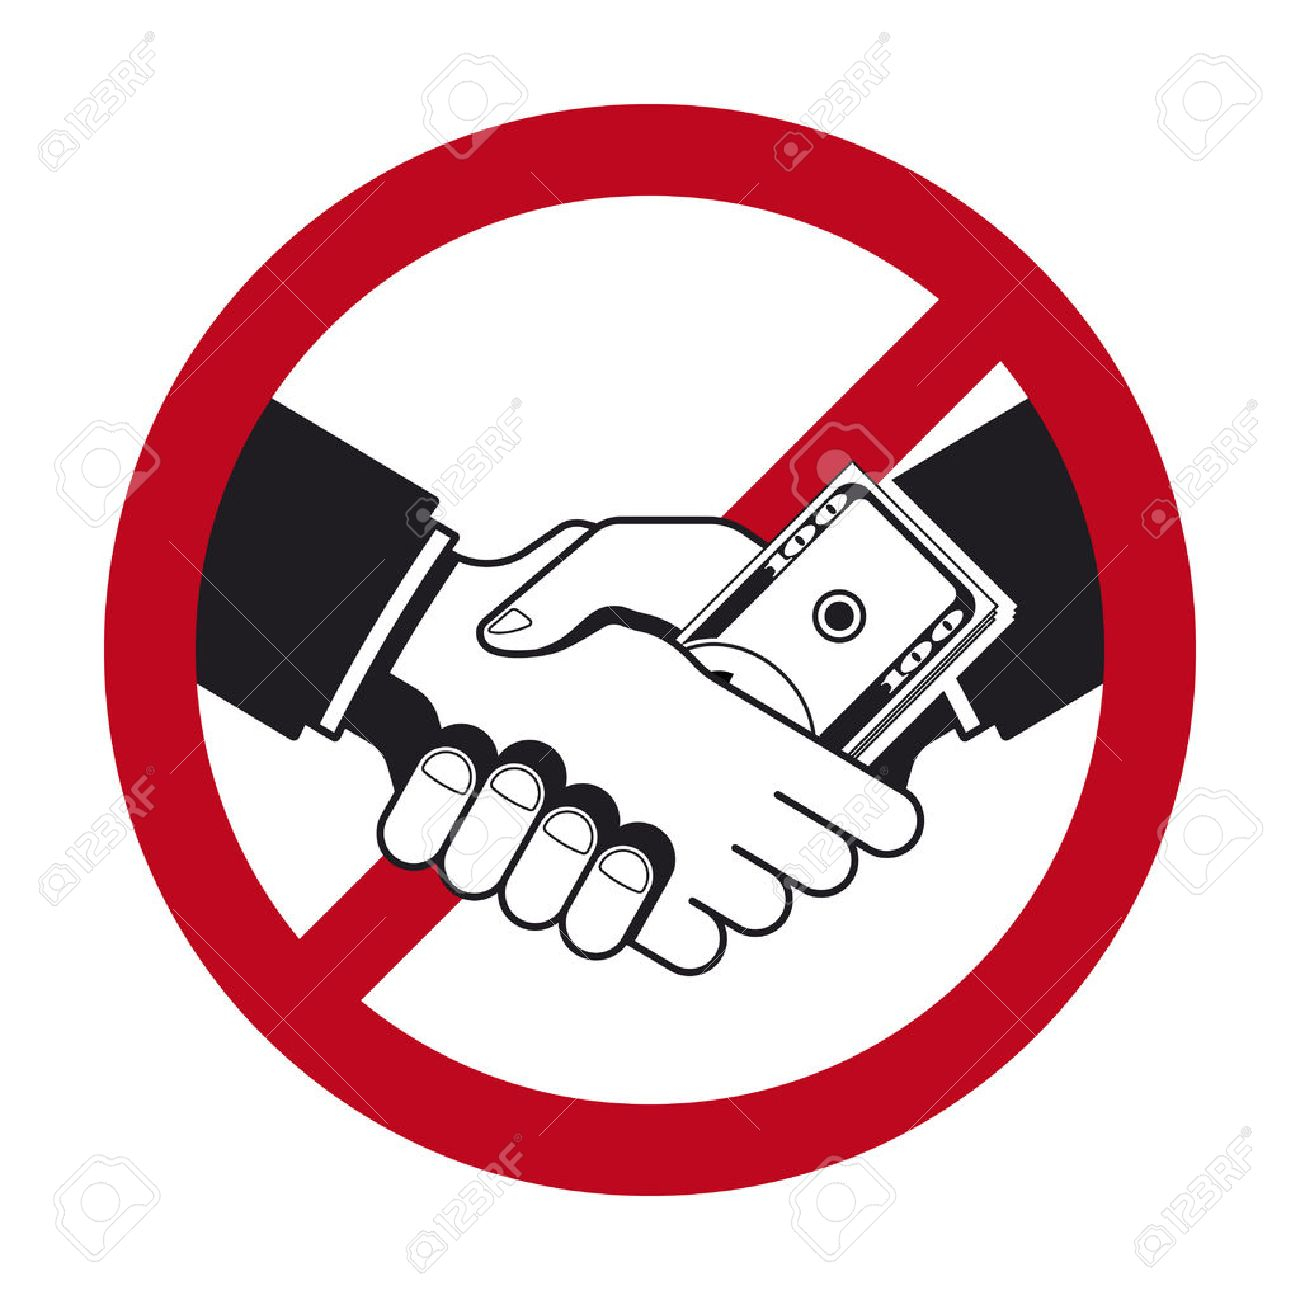 Handshake with bribe over prohibitive sign - 46535115